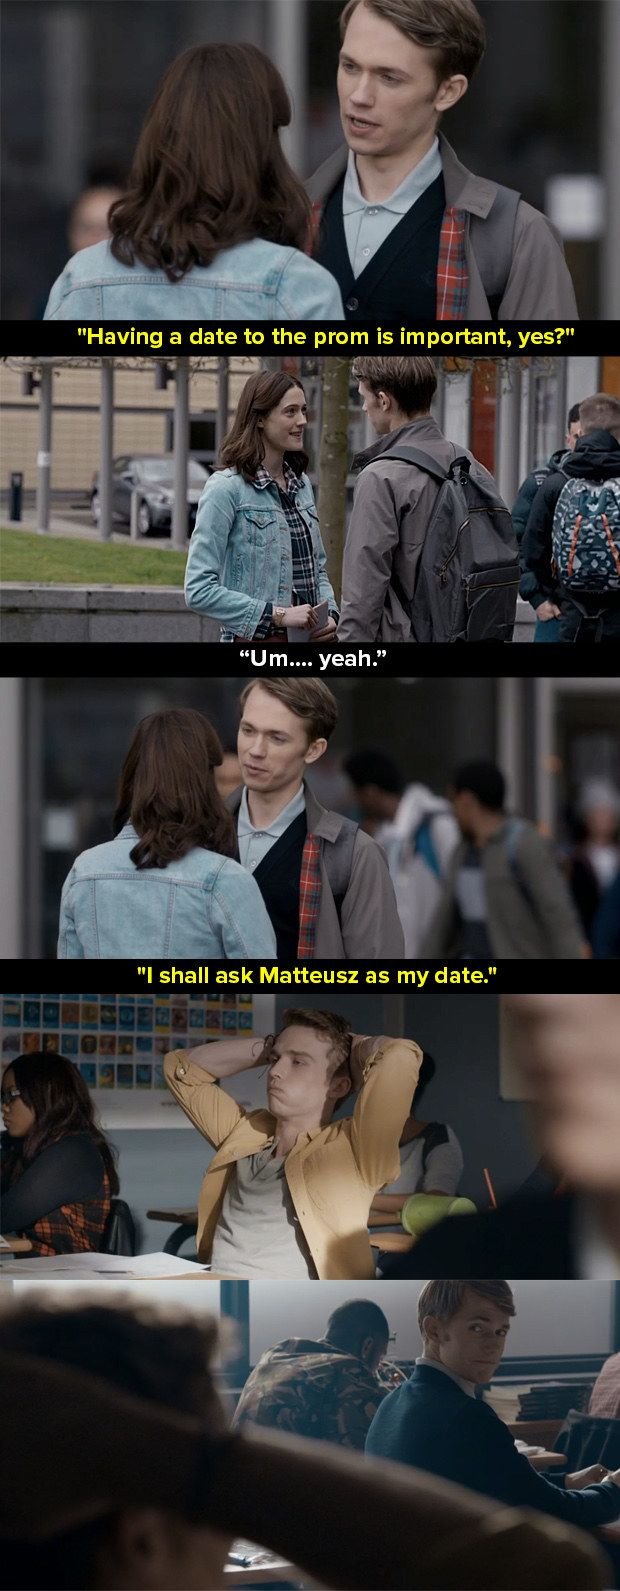 """There is, for example, the no-nonsense way Charlie says he likes guys, and in particular Matteusz.   The Writer Behind """"Class"""" On Why The Show Casually Portrays Gay Love"""